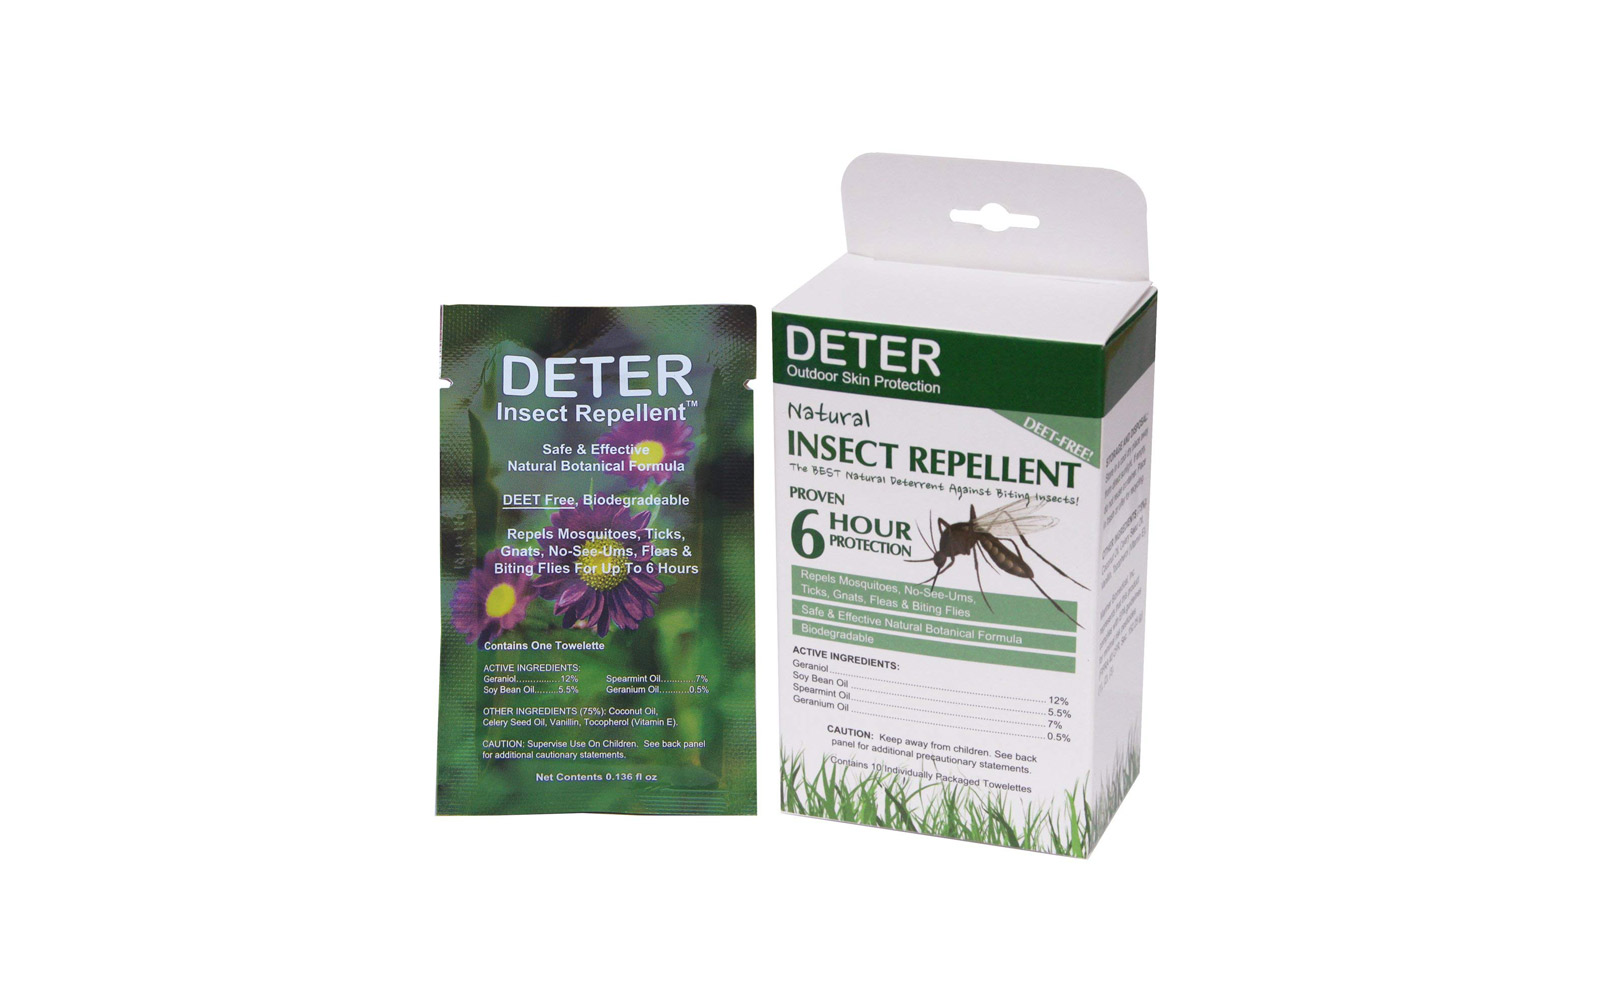 Deter Natural Insect Repellent Wipes